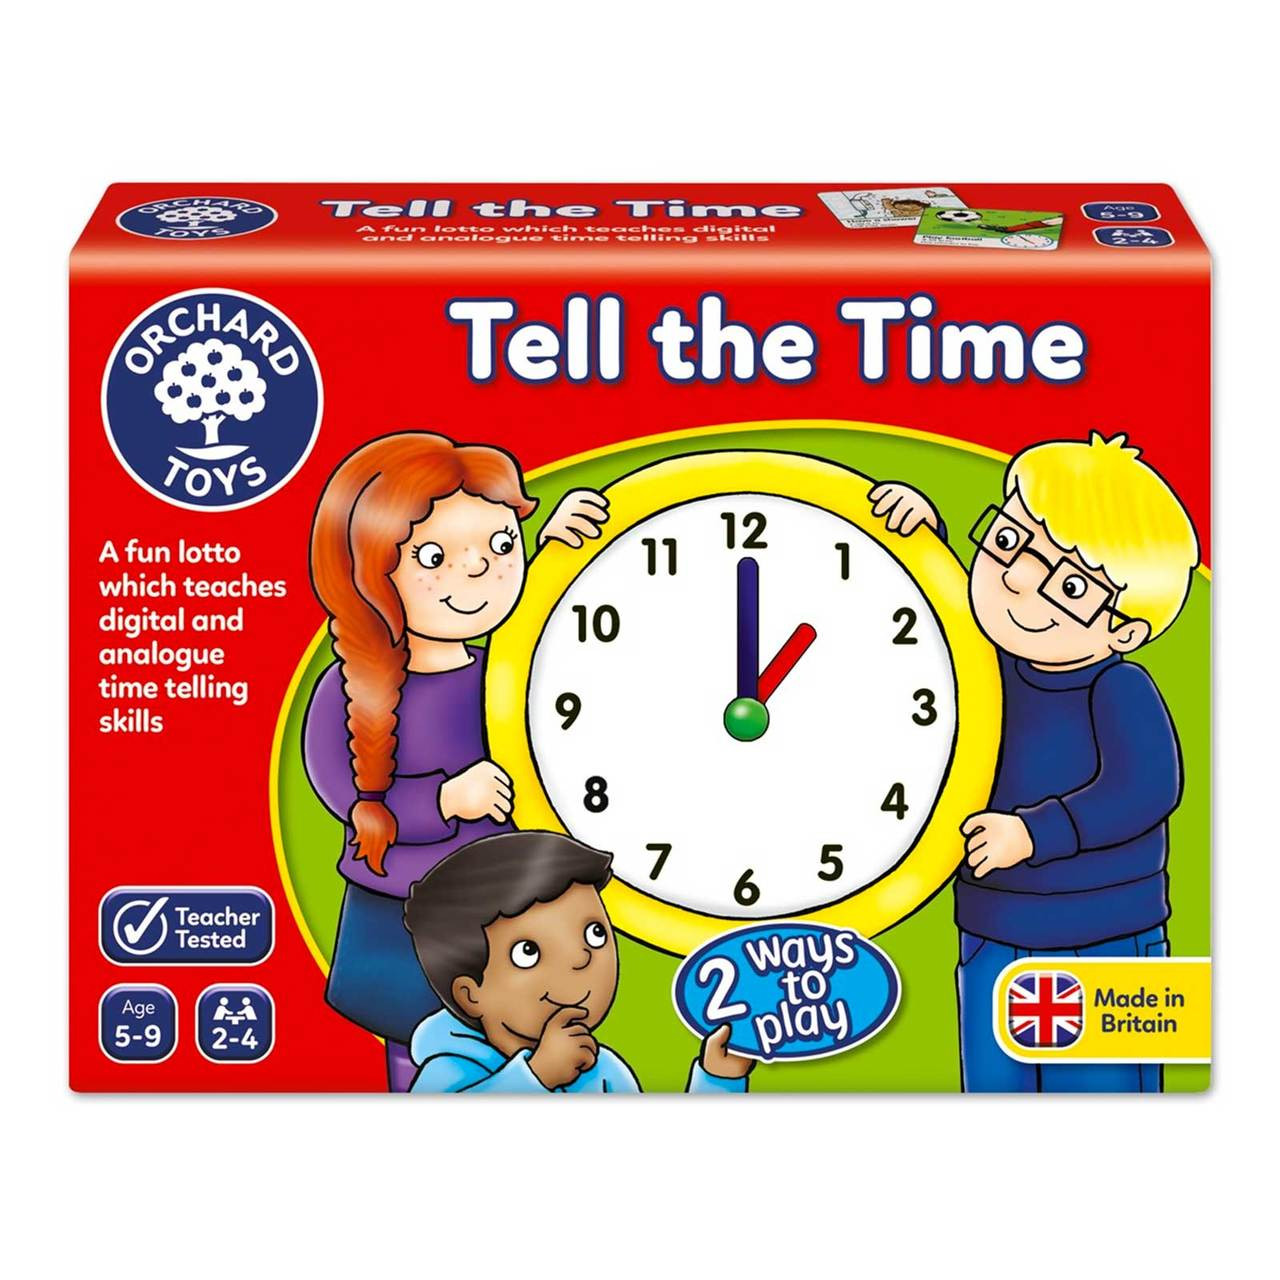 Telling time online games